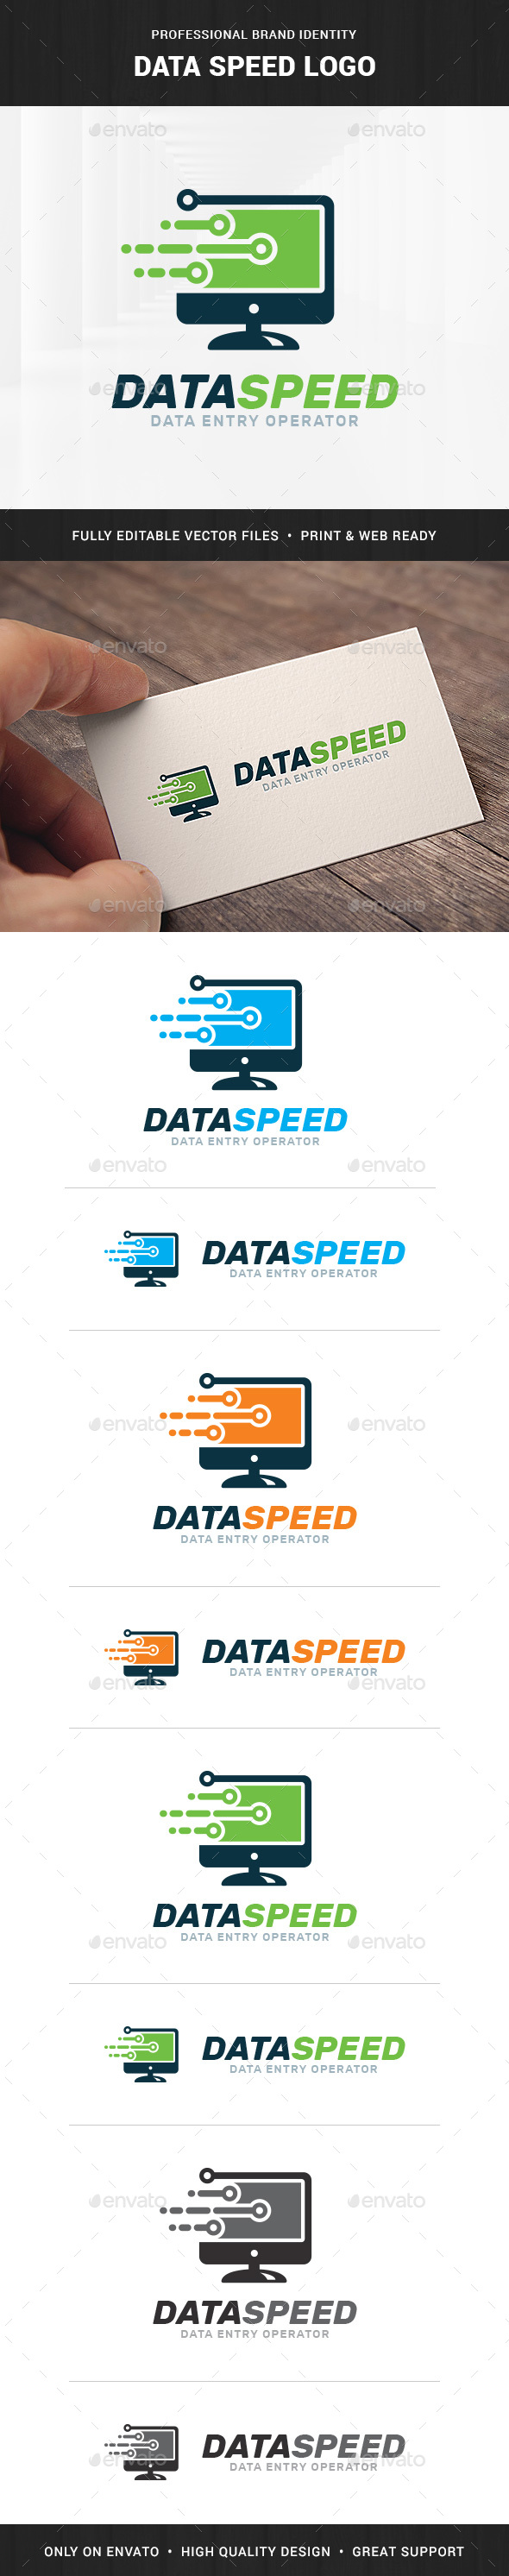 Data Speed Logo Template - Objects Logo Templates